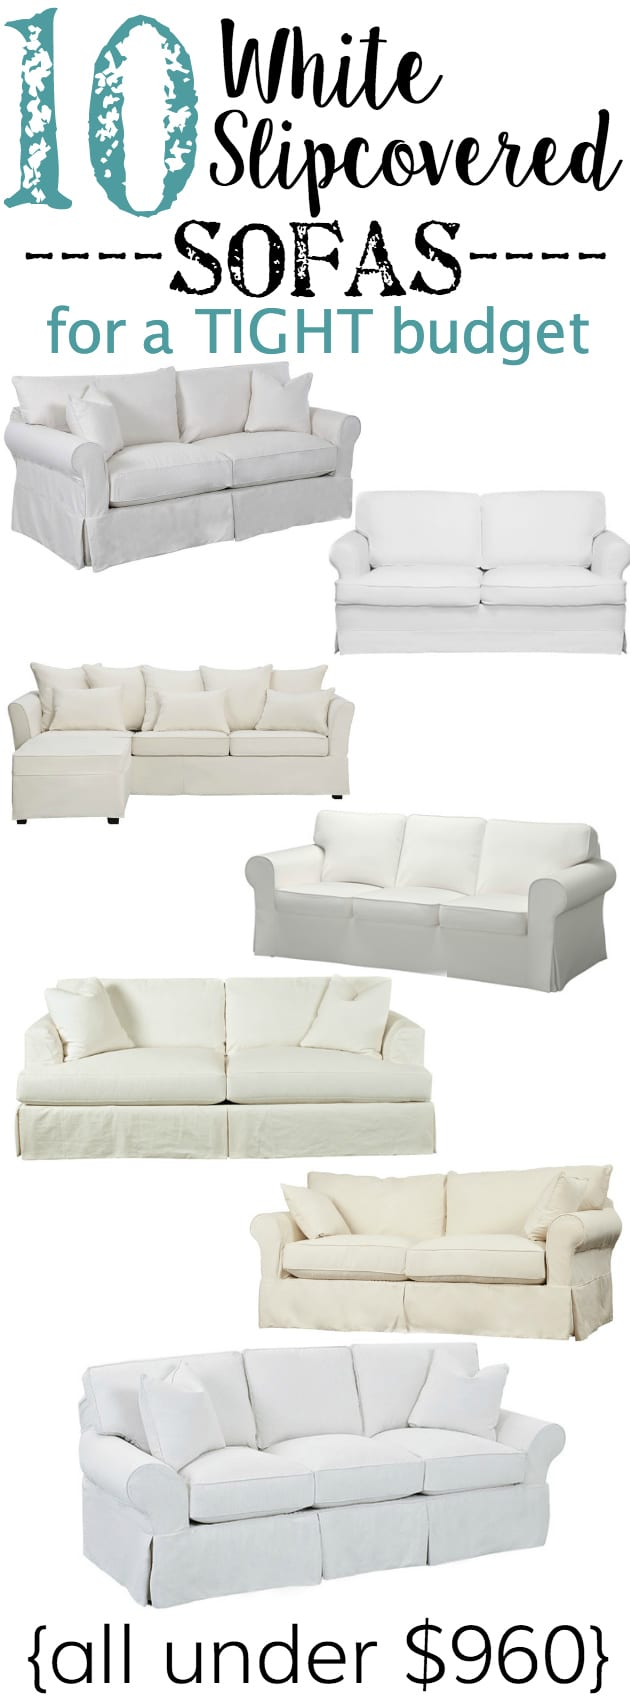 10 White Slipcovered Sofas for a Tight Budget | blesserhouse.com - A shopping guide with 10 white slipcovered sofas on a budget, plus why they are the best option for any families with kids and pets.